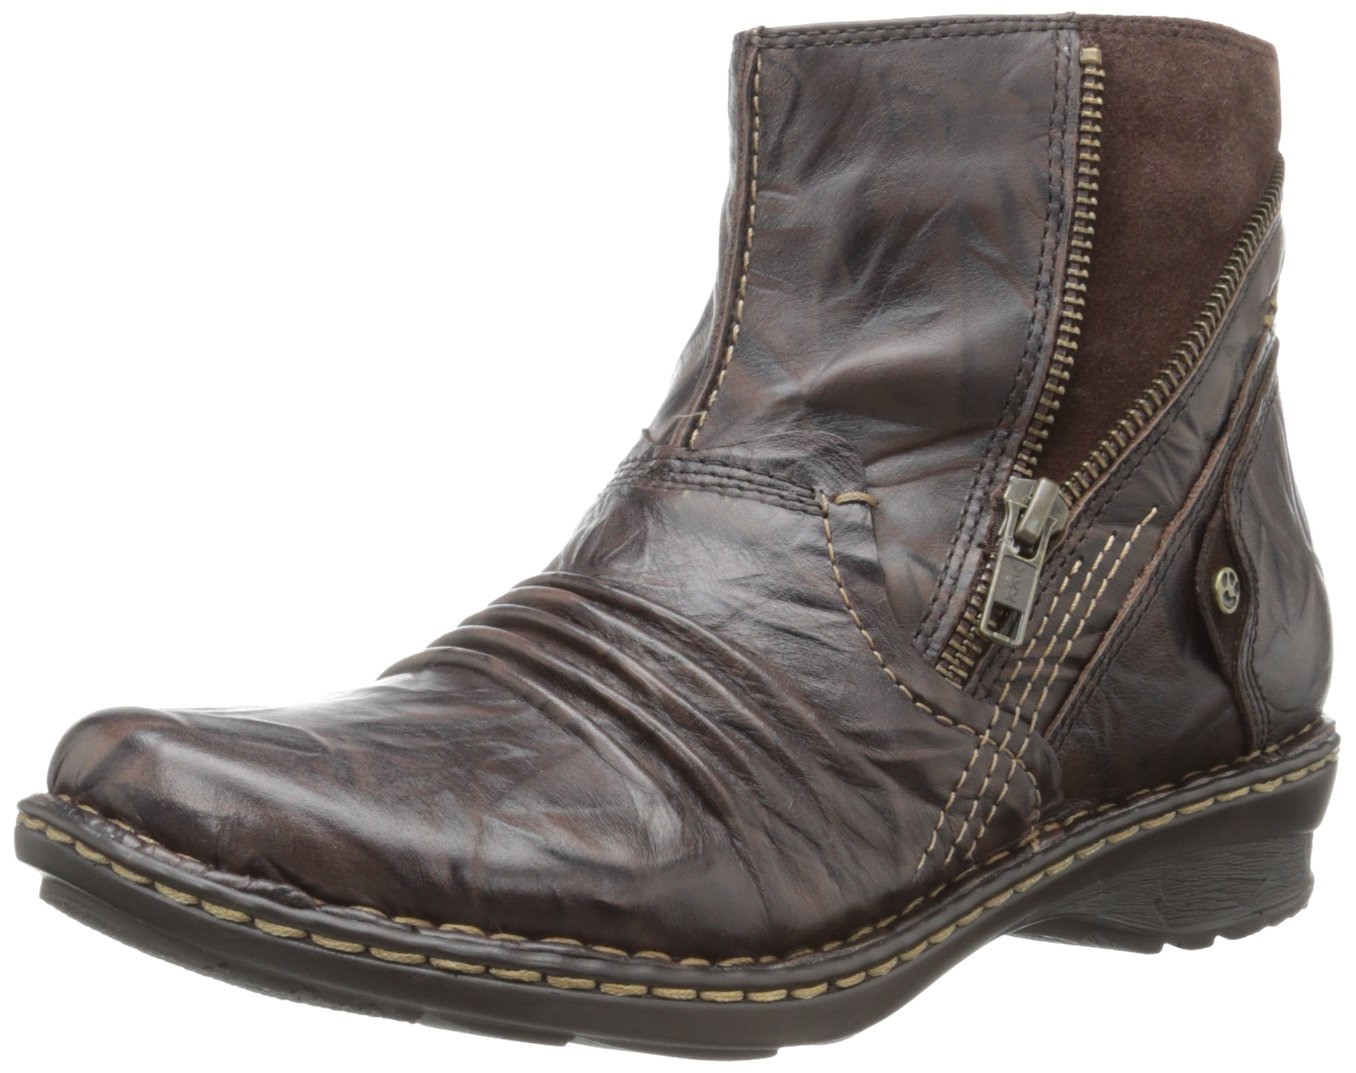 Earth Women's Poplar Ankle Boot B007PSLYAU 6 B(M) US|Dark Brown